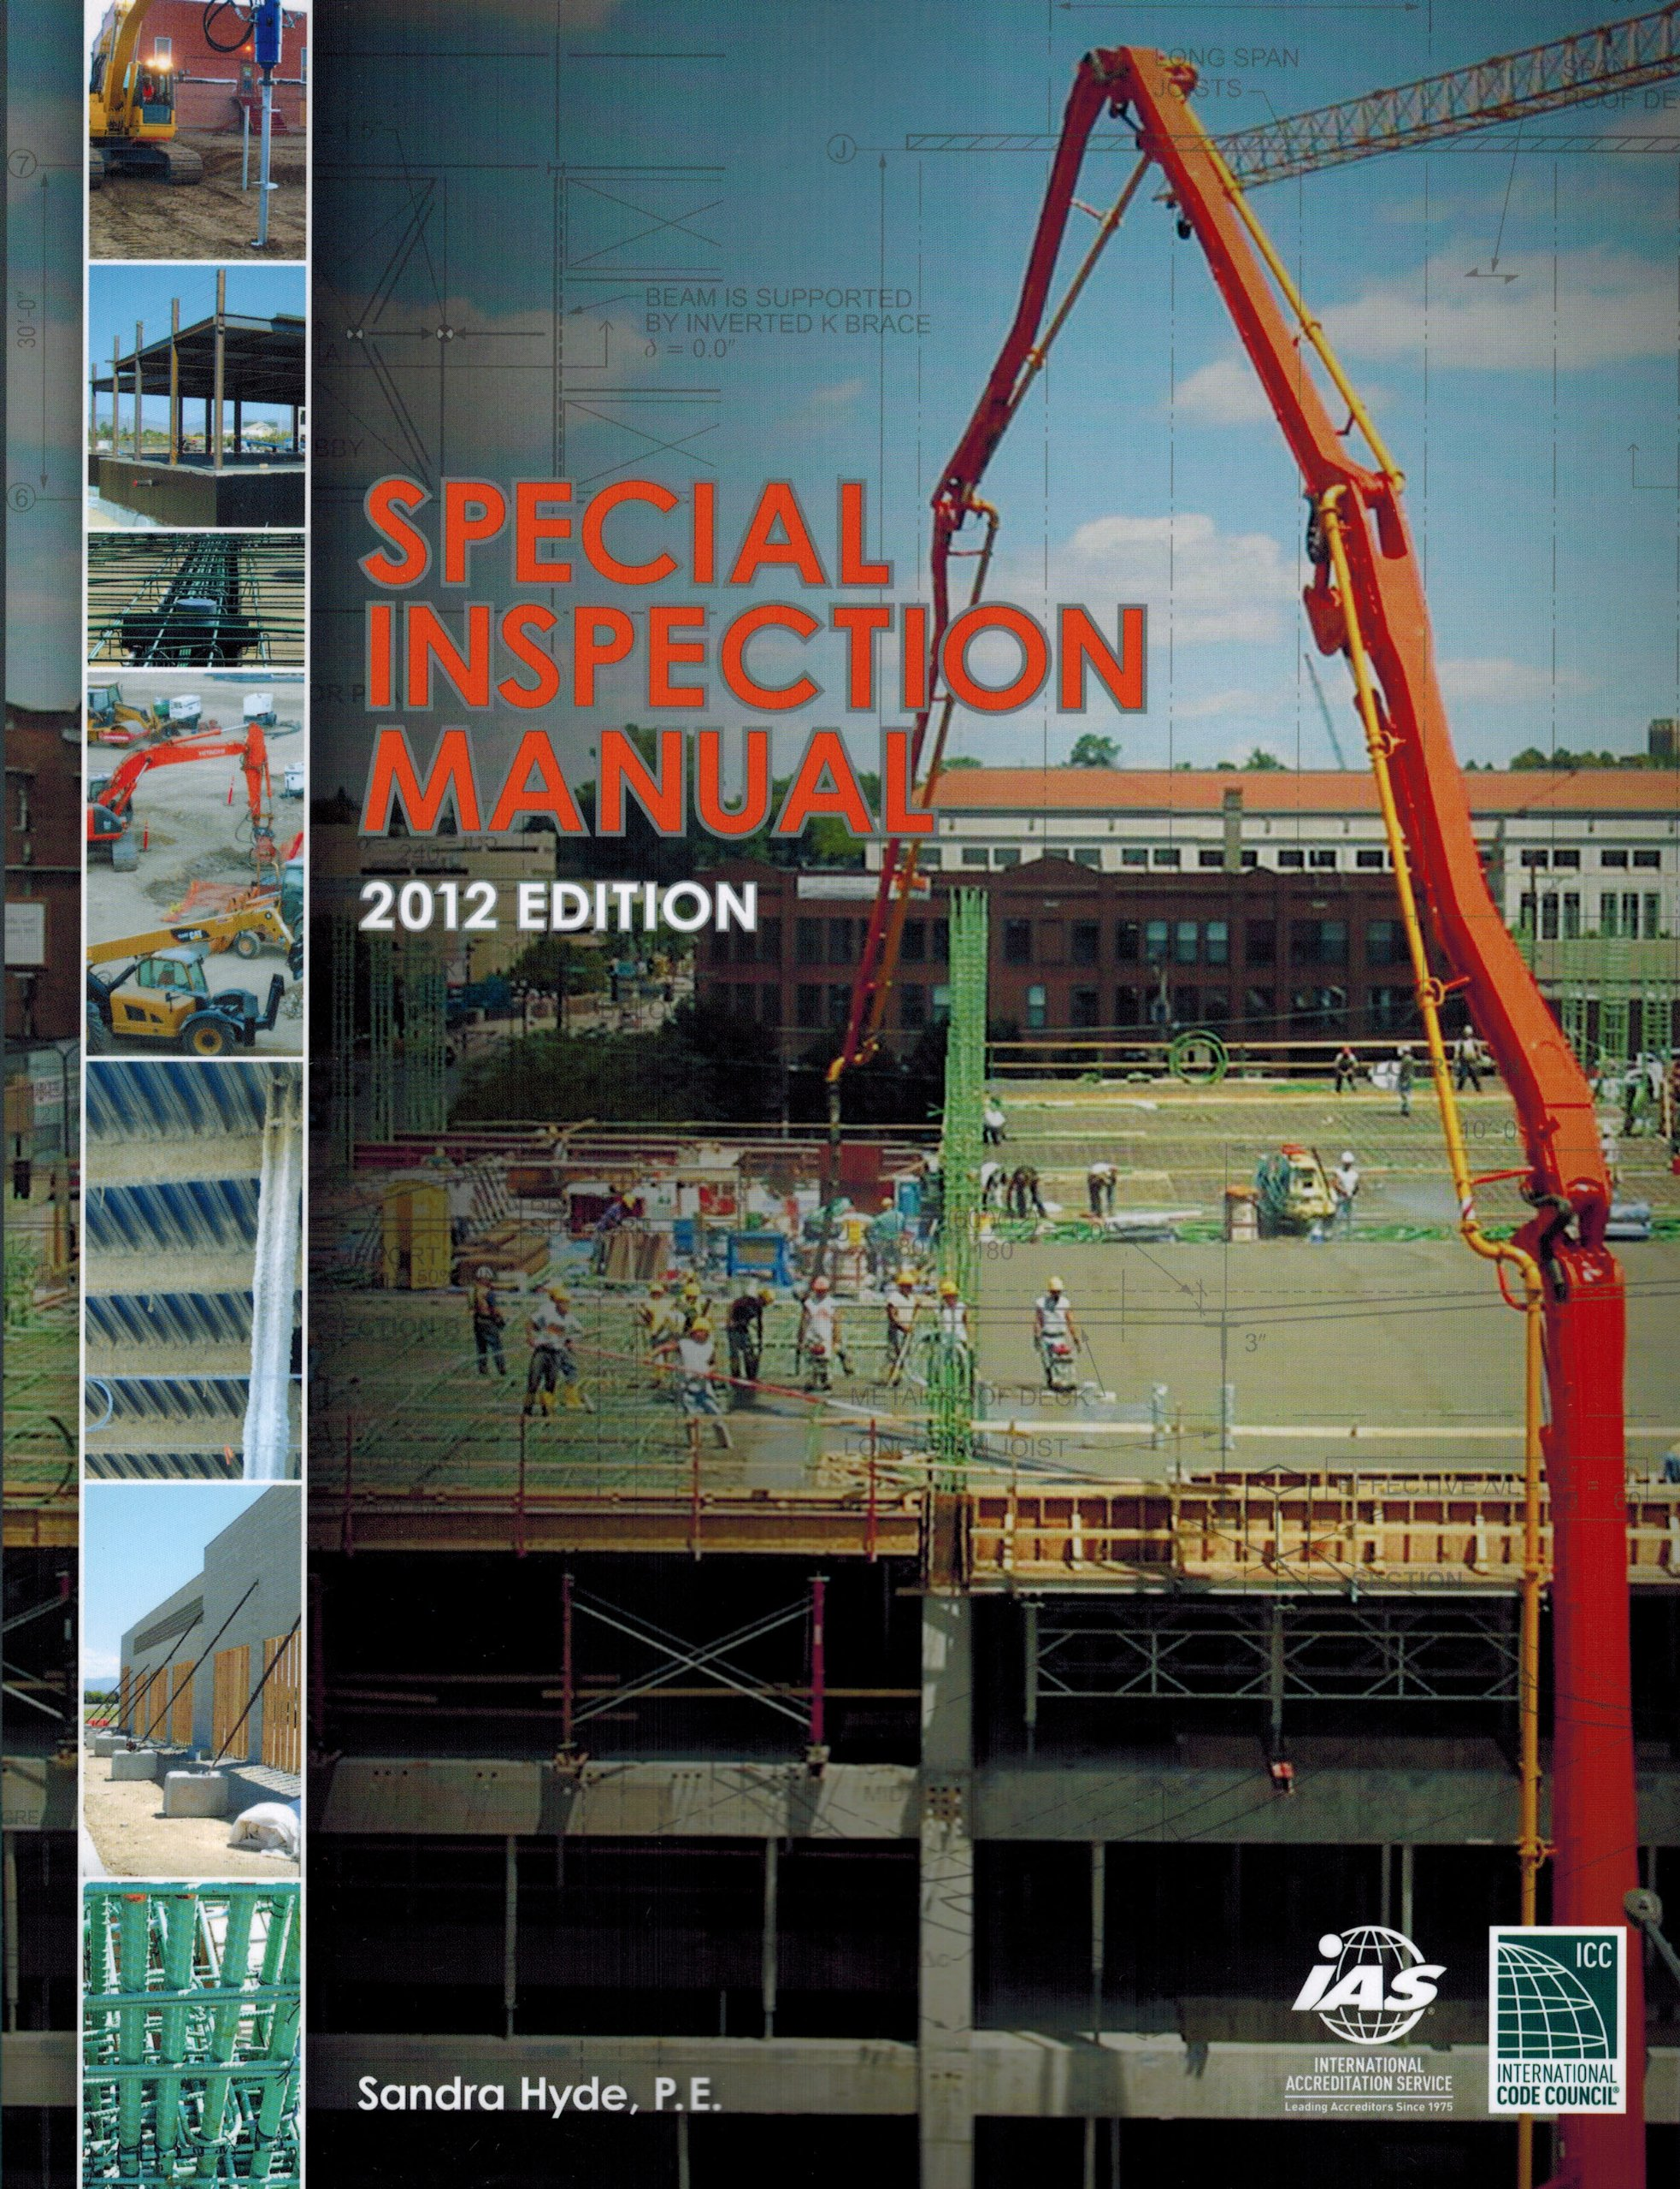 Special inspection manual 2012 edition 9781609835224 amazon special inspection manual 2012 edition 9781609835224 amazon books fandeluxe Gallery